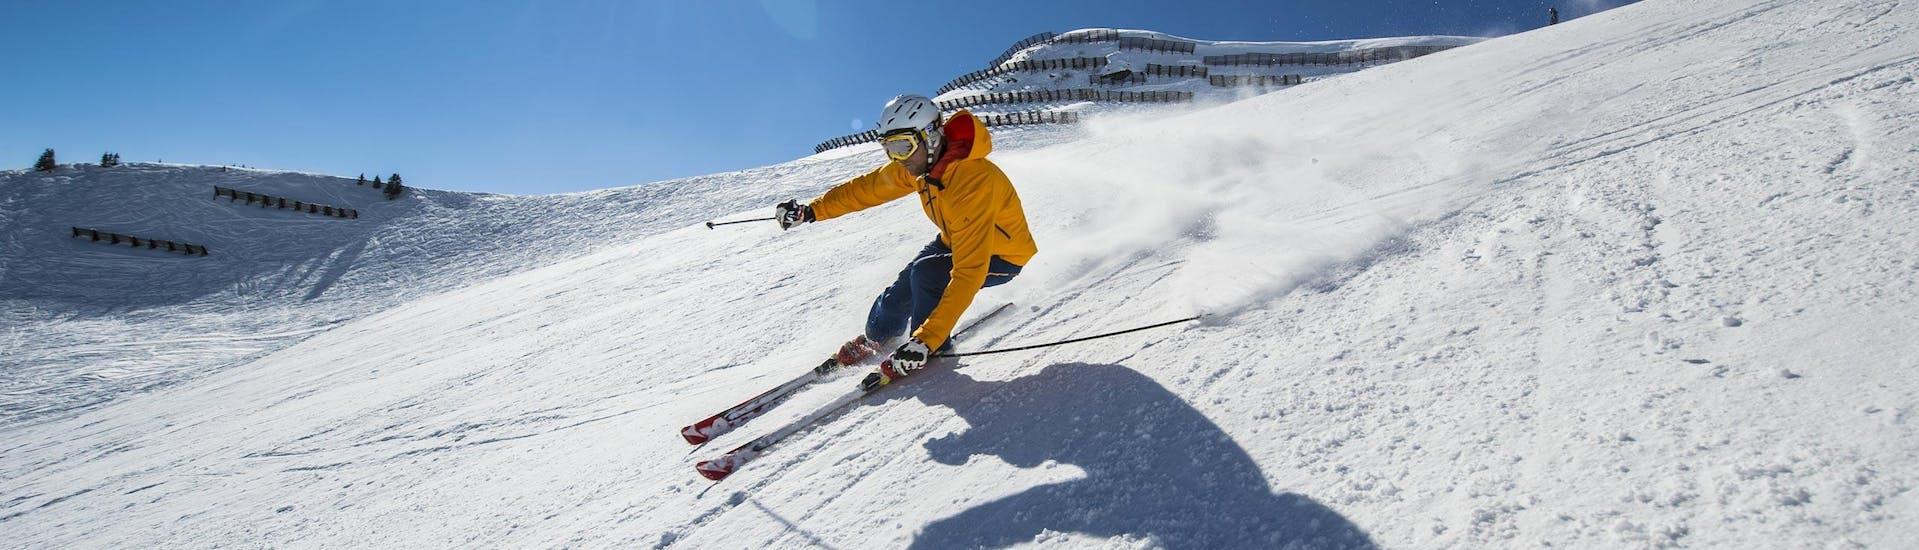 Ski Instructor Private for Families - 5 Days: A skier is skiing down a sunny ski slope while participating in an activity offered by Scuola di Sci Equipe Falcade.